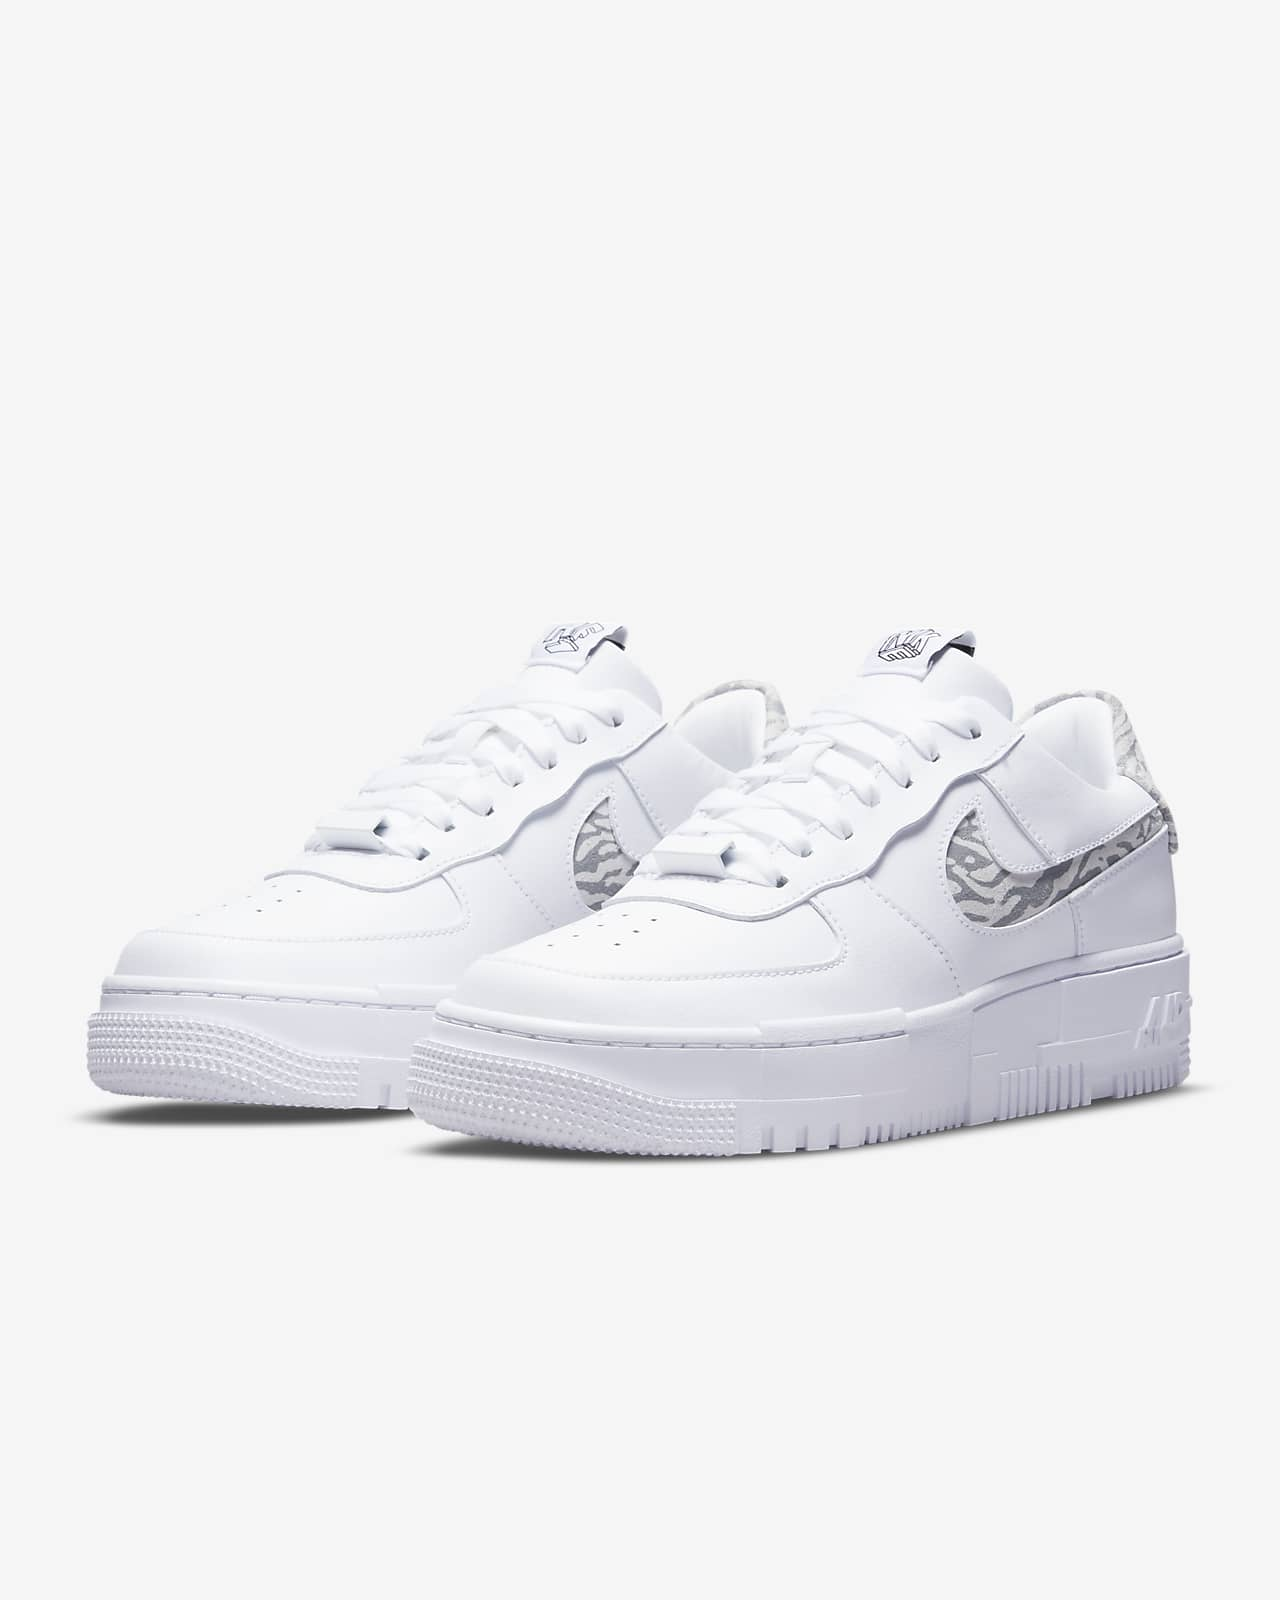 Chaussures Nike Air Force 1 Pixel SE pour Femme. Nike LU